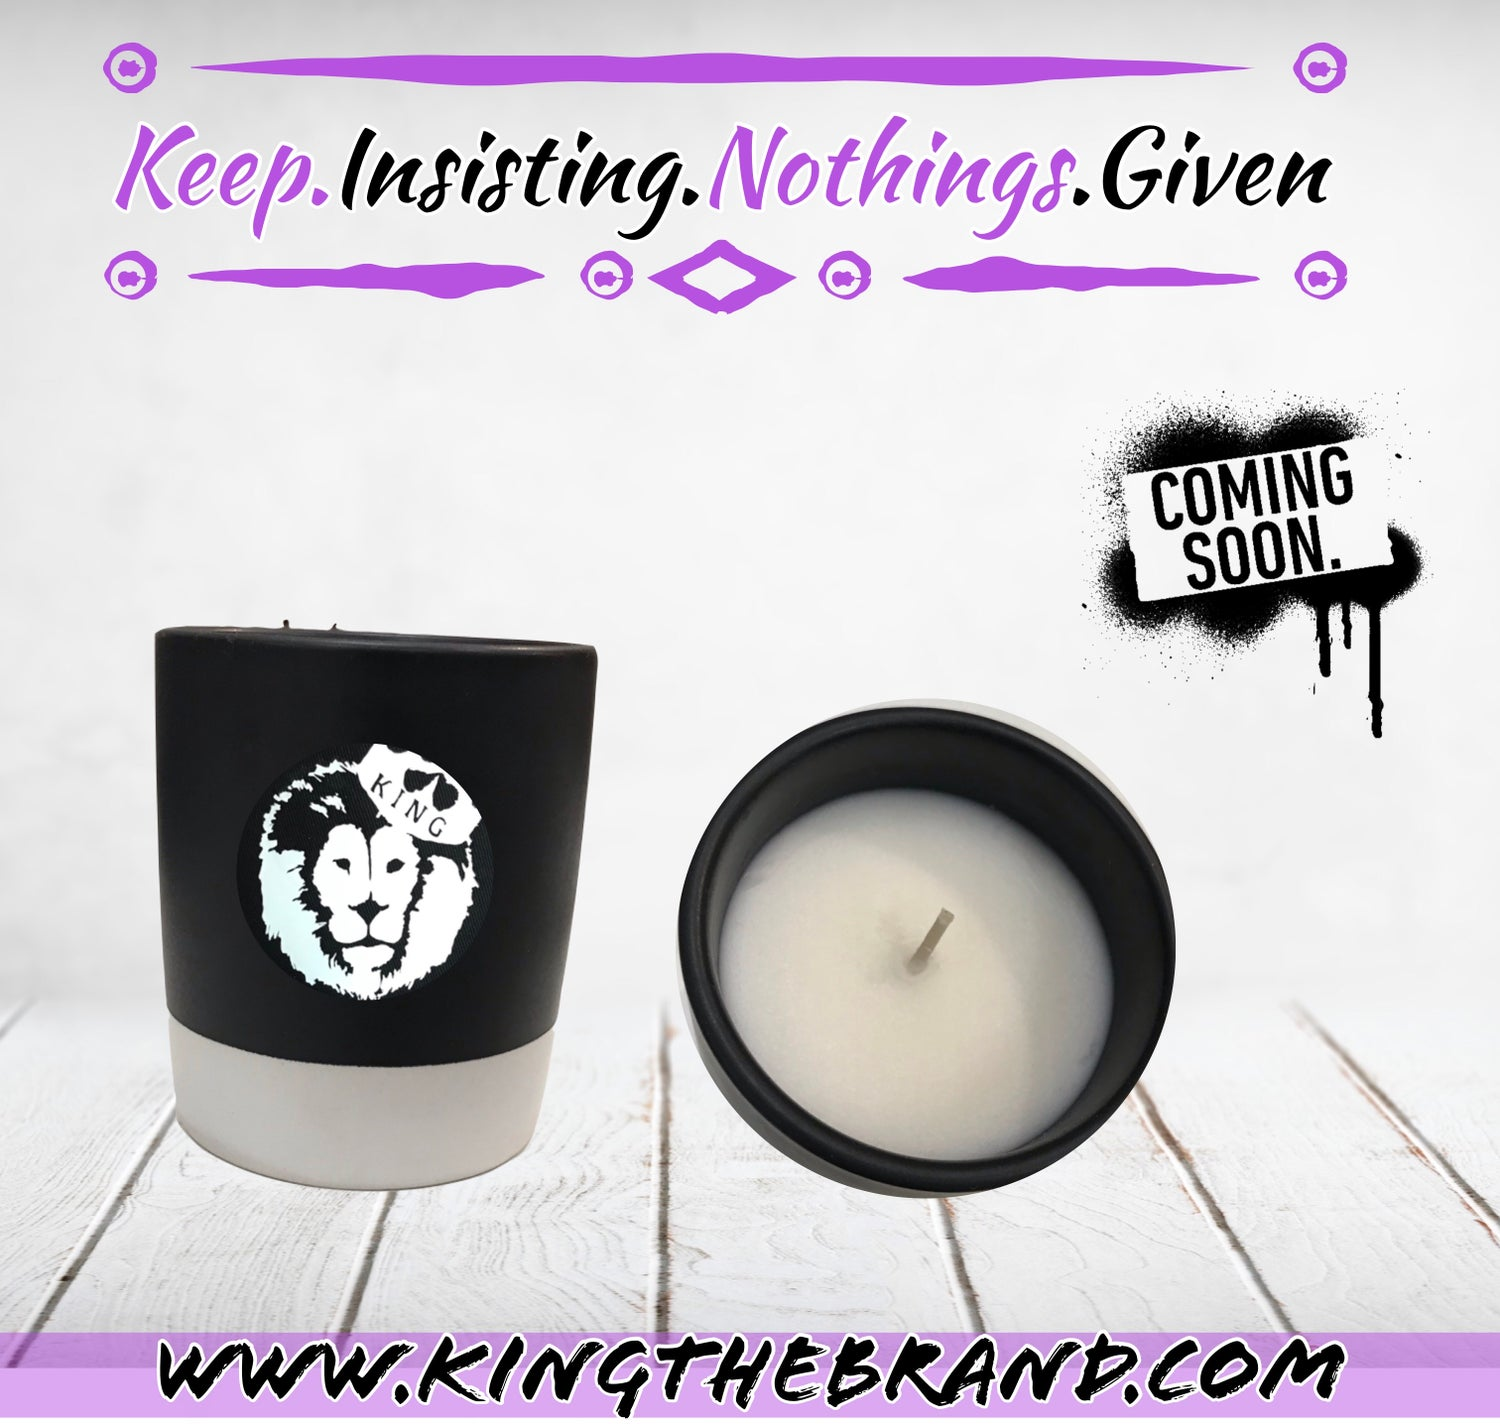 Image of K.I.N.G Candle